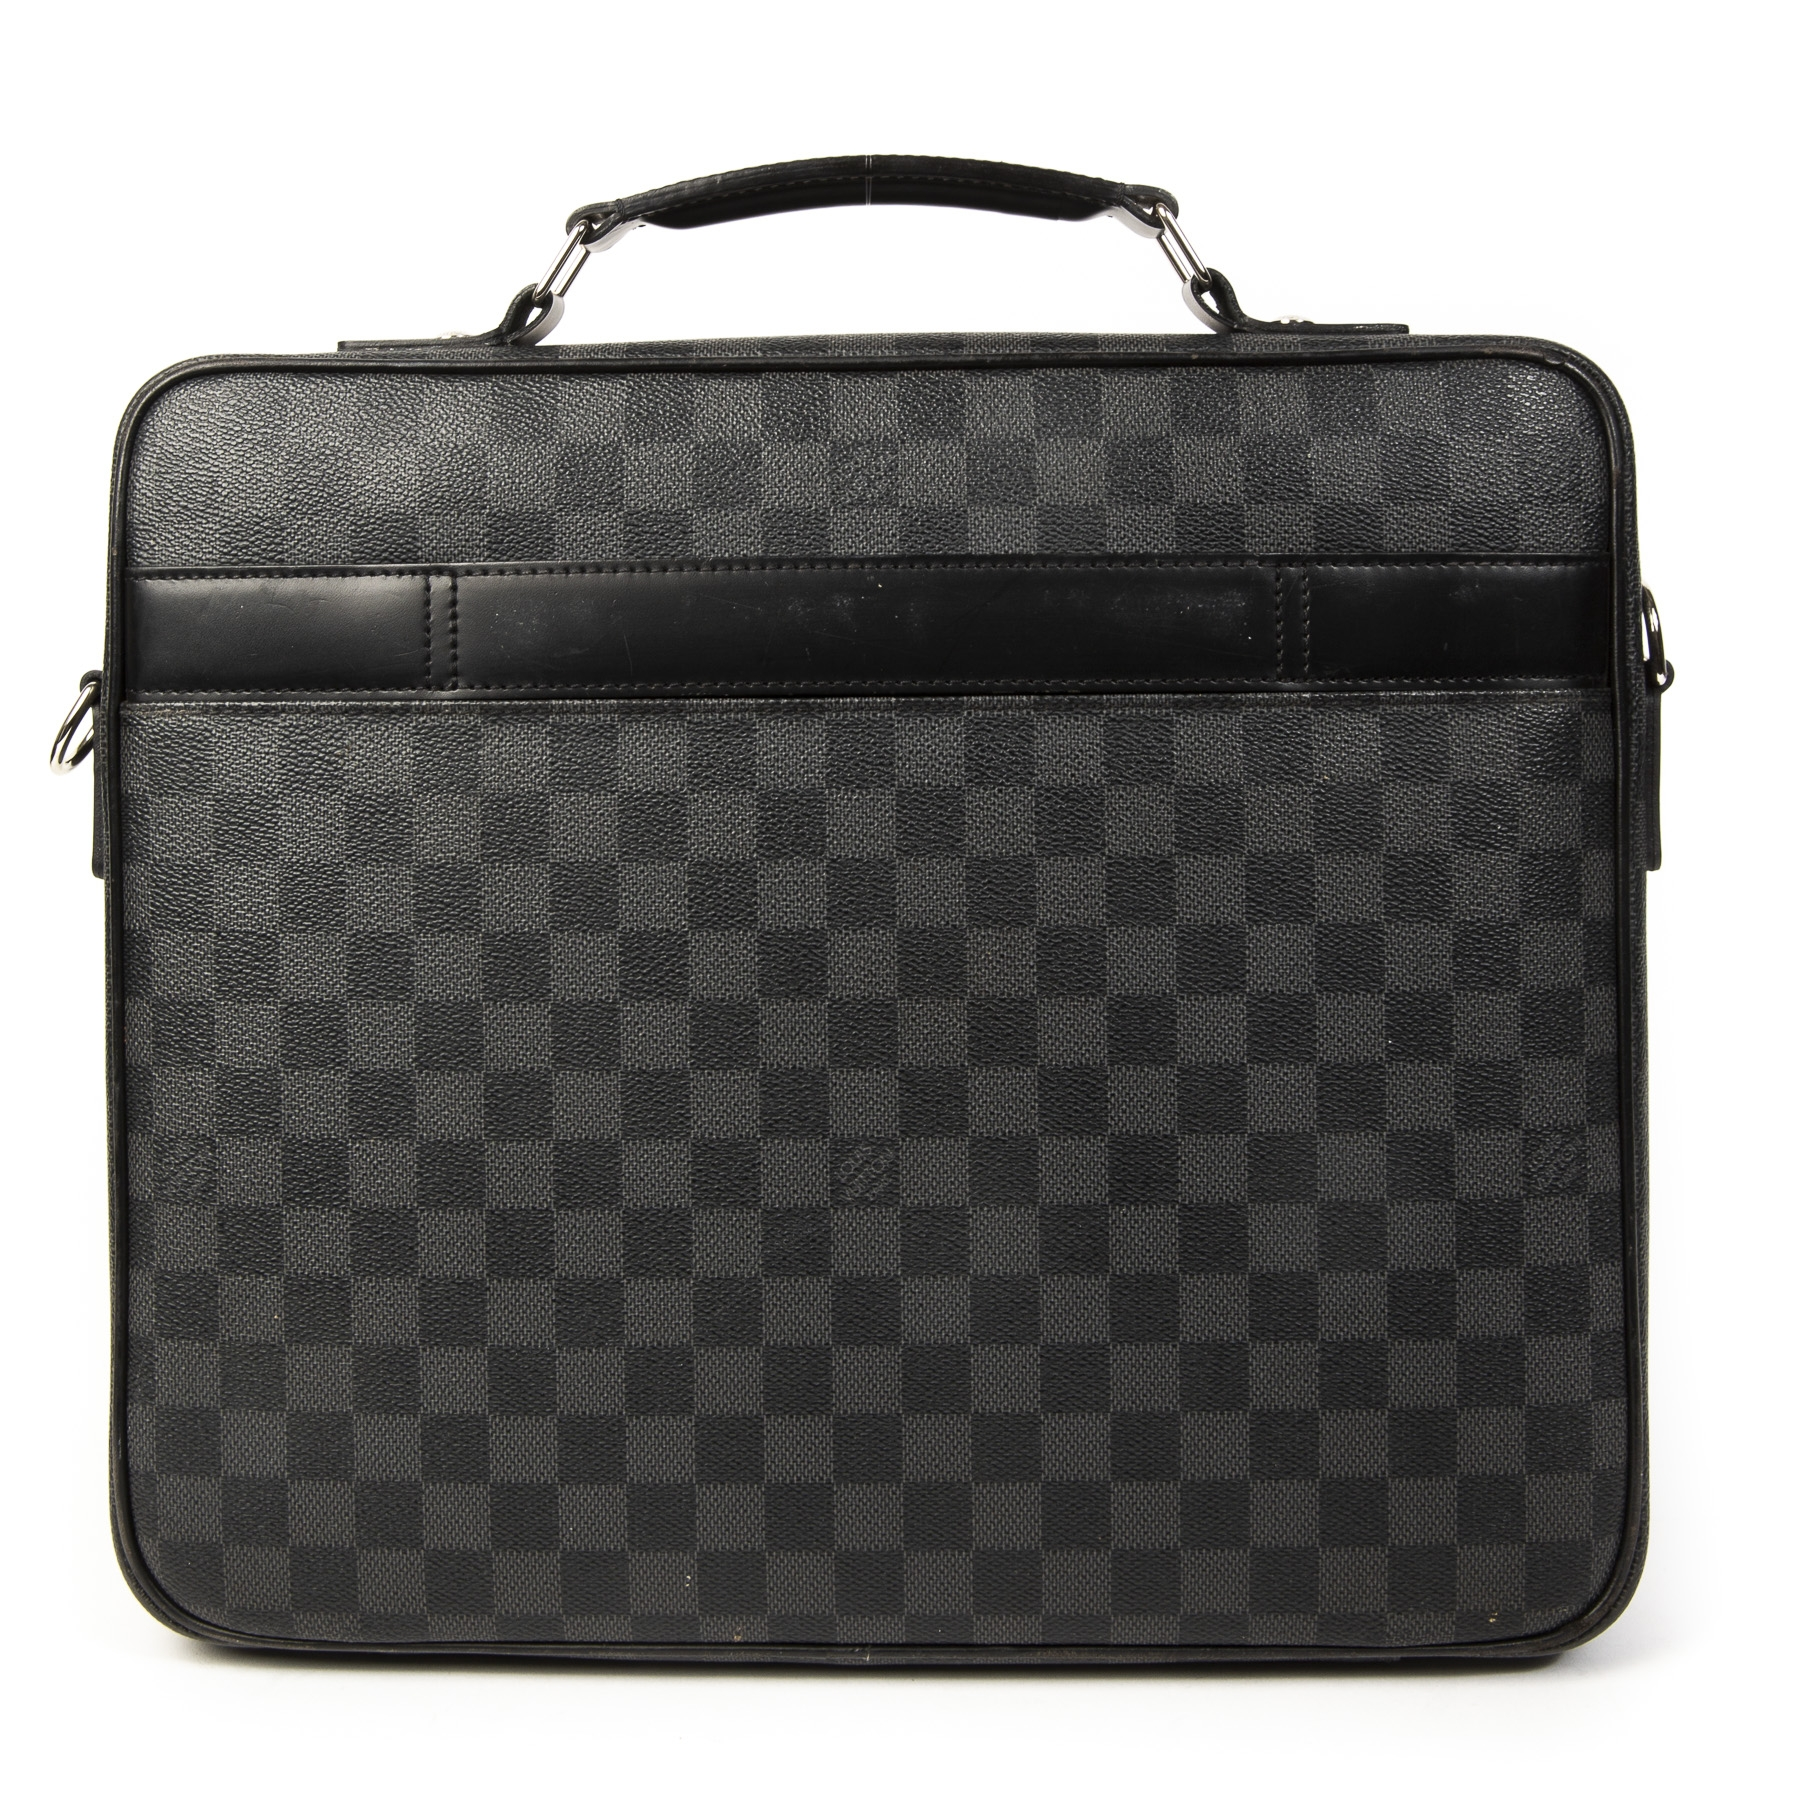 1ae9f4fae6e ... Buy and sell your Louis Vuitton Steeve Laptop Bag Damier Graphite for  the best price at